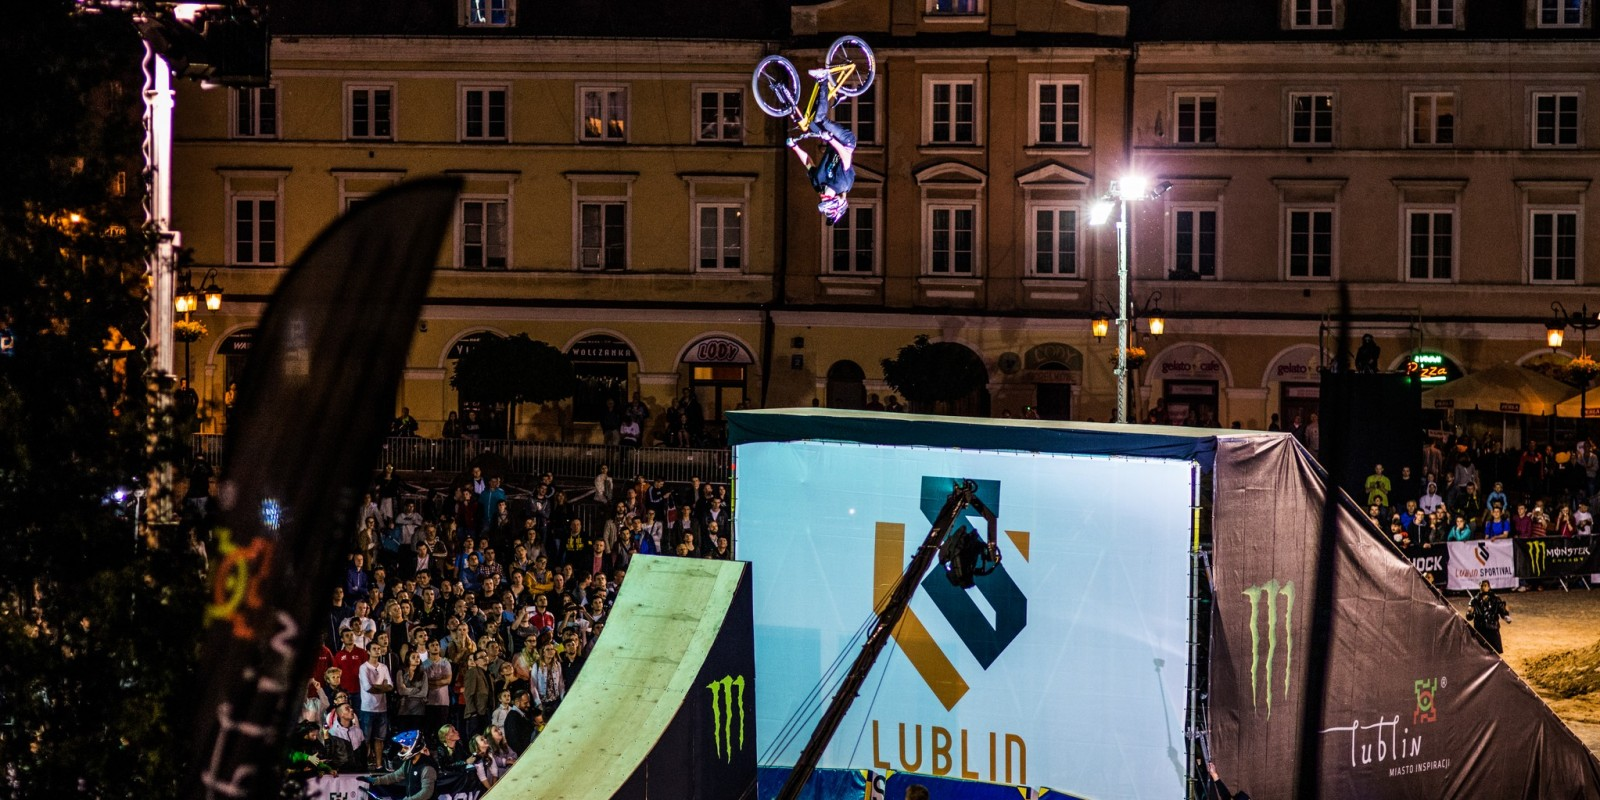 Monster Energy at the 2015 FMB Lublin Sportival in Lublin, Poland